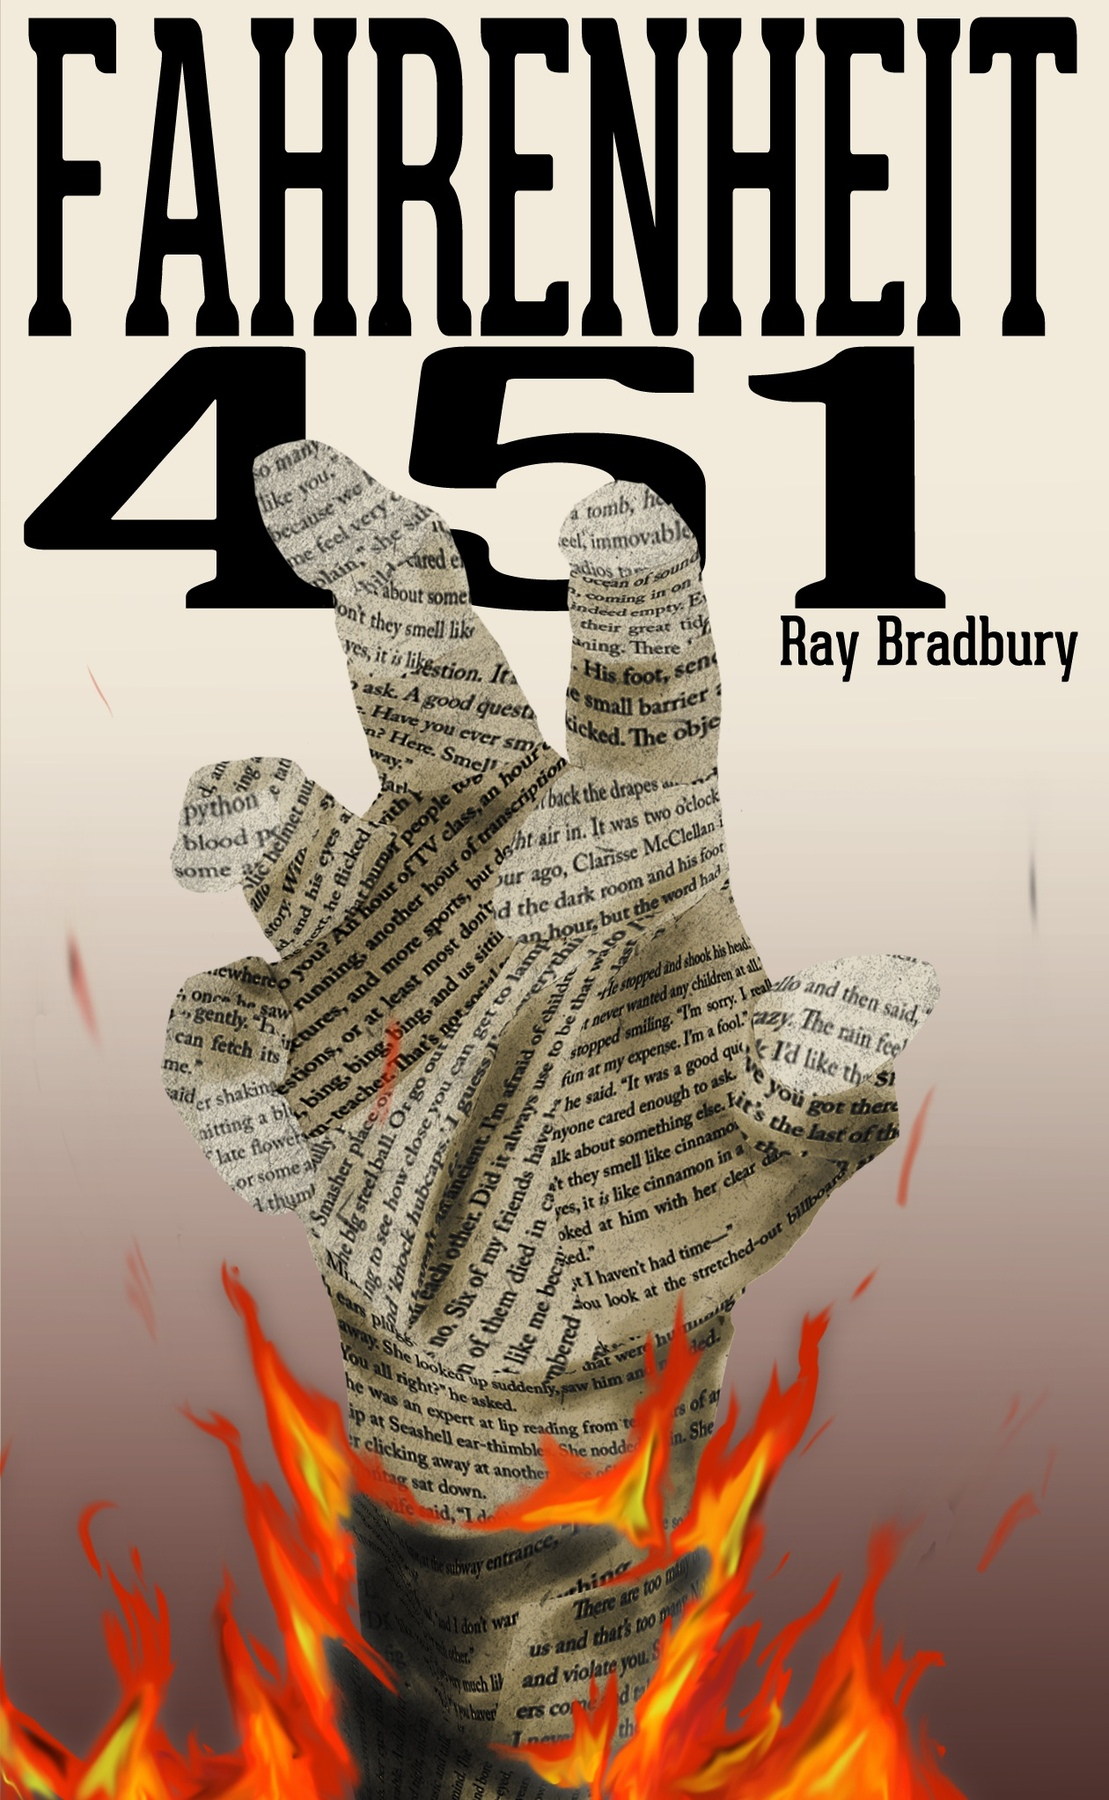 the notion of censorship in fahrenheit 451 a novel by ray bradbury Ray bradbury is america's foremost writer of science fiction and fantasy among his most popular adult books are fahrenheit 451, the martian chronicles, the illustrated man, dandelion wine, and death is a lonely business.